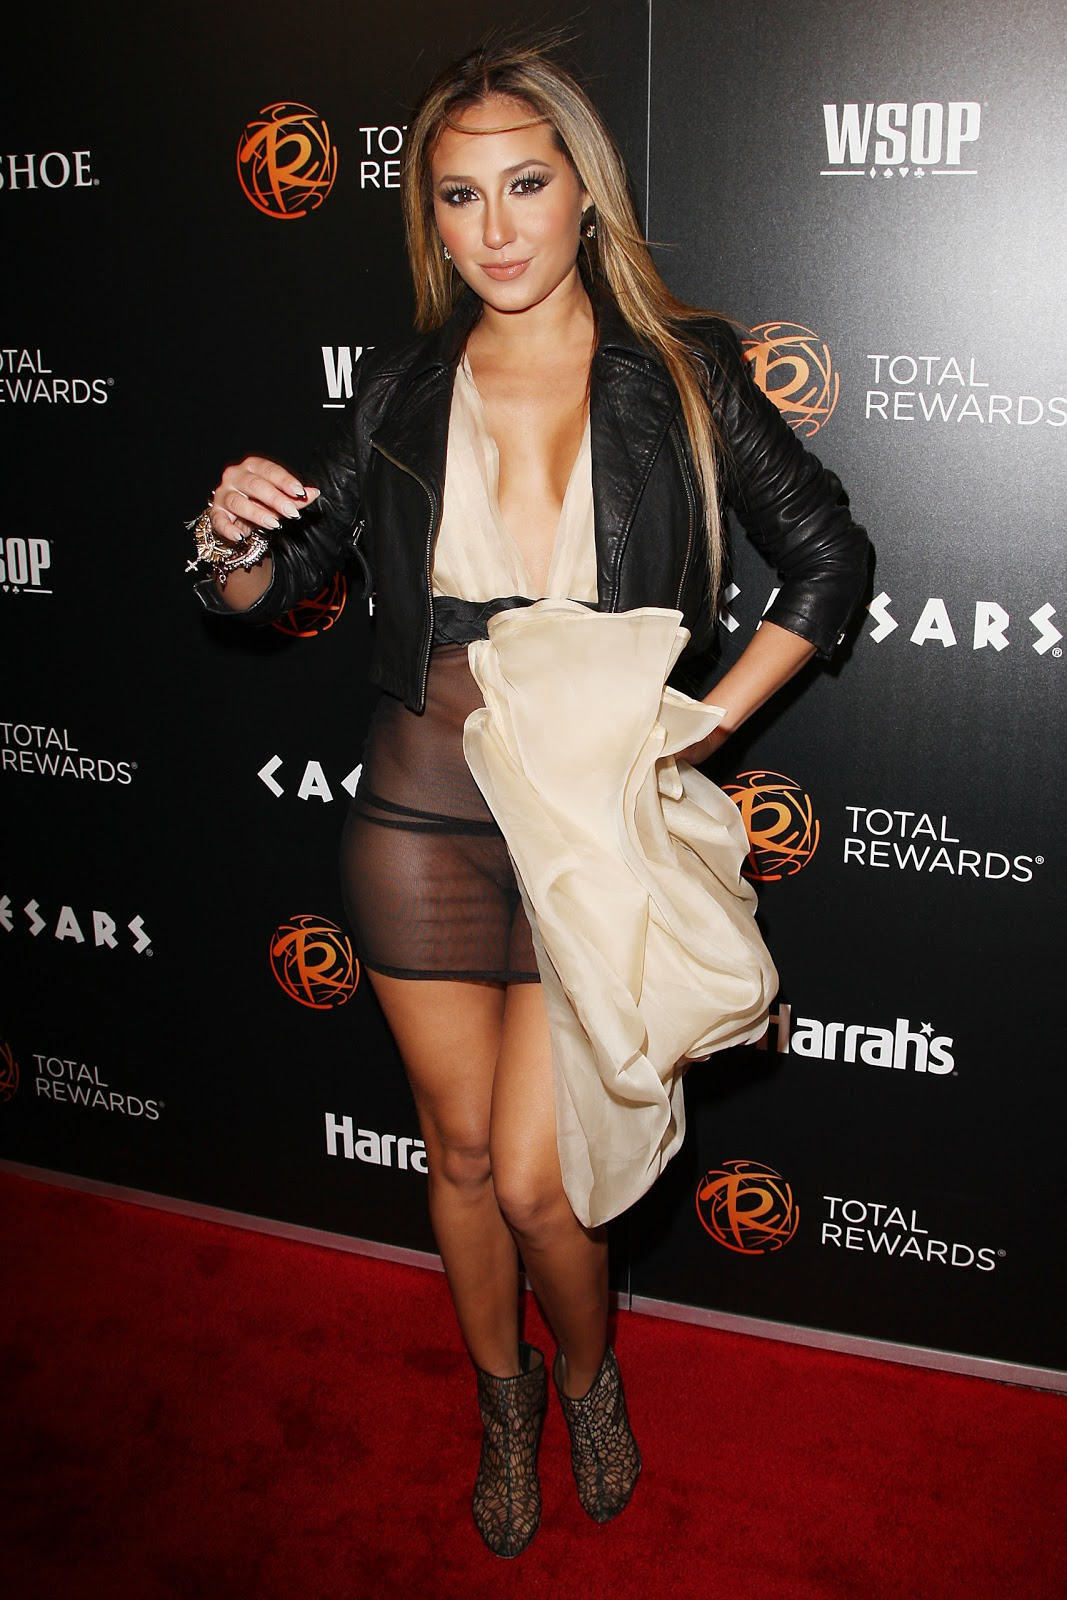 Impudence! Adrienne bailon uncensored naked pics was